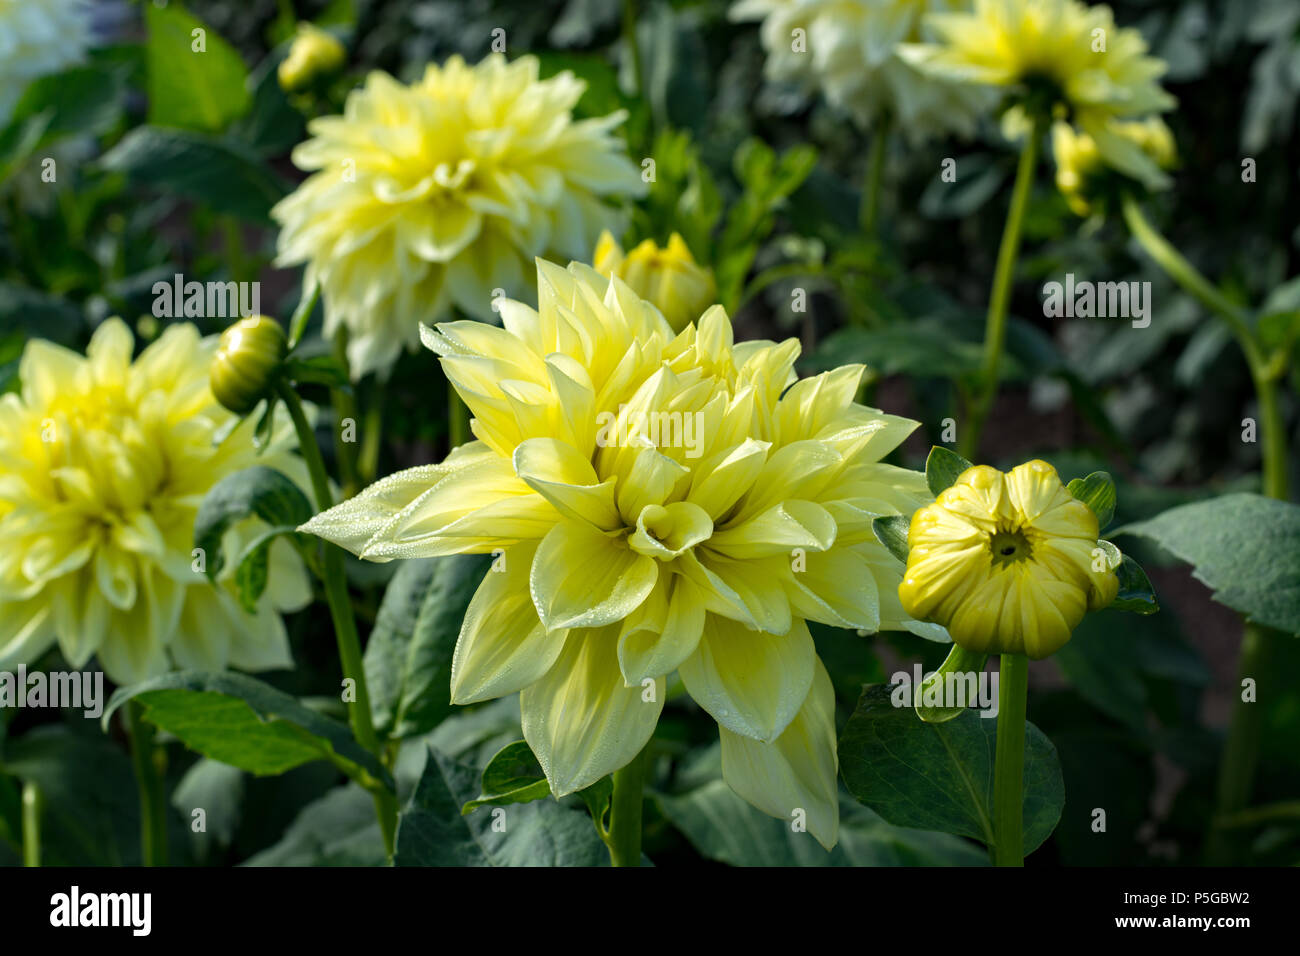 Yellow dahlia flower on the plant beatyful bouquet or decoration yellow dahlia flower on the plant beatyful bouquet or decoration from the garden izmirmasajfo